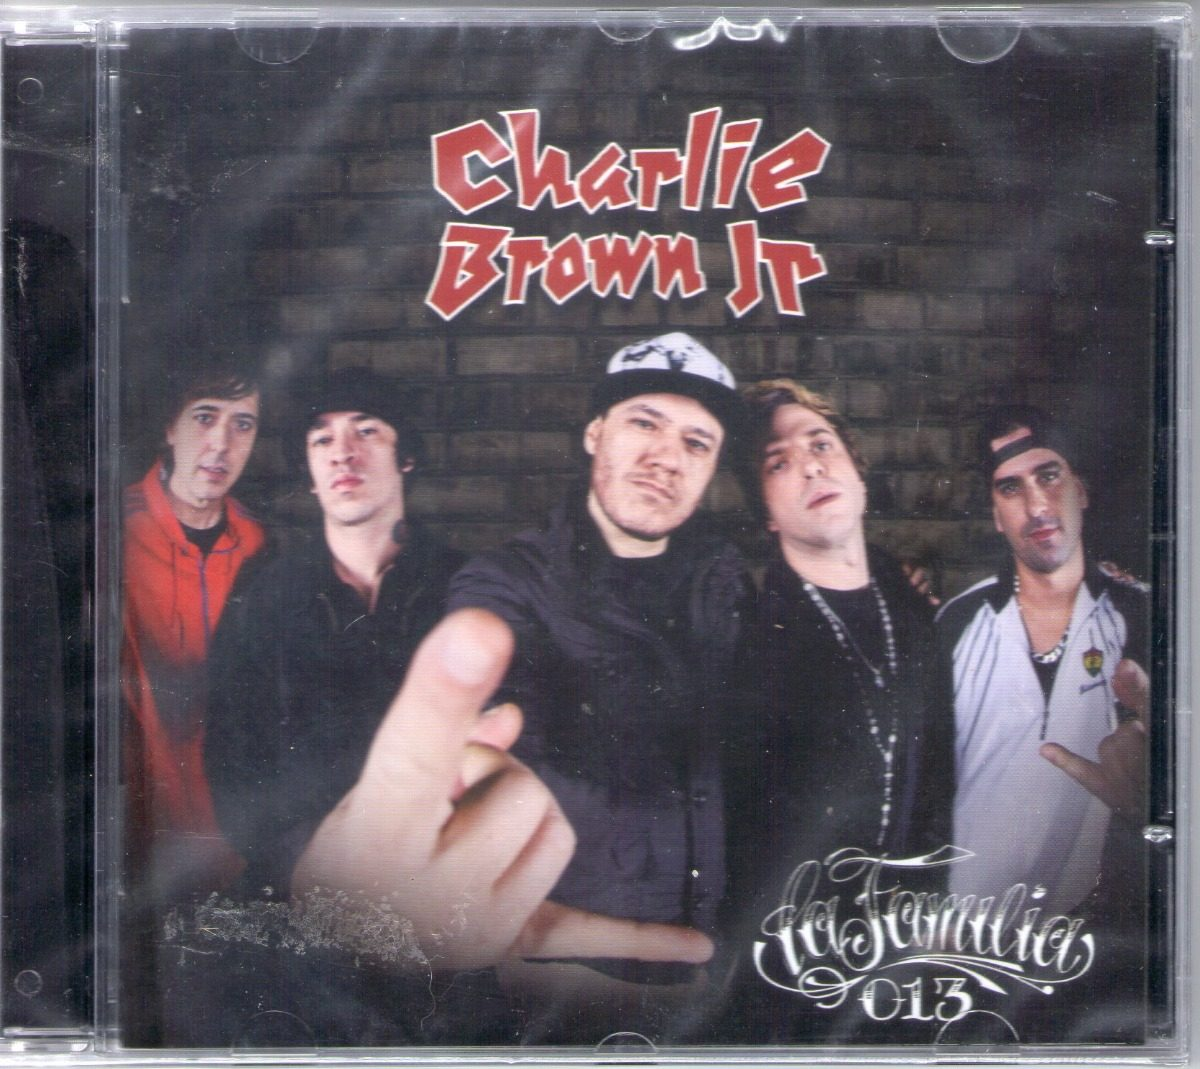 cd charlie brown jr la familia 013